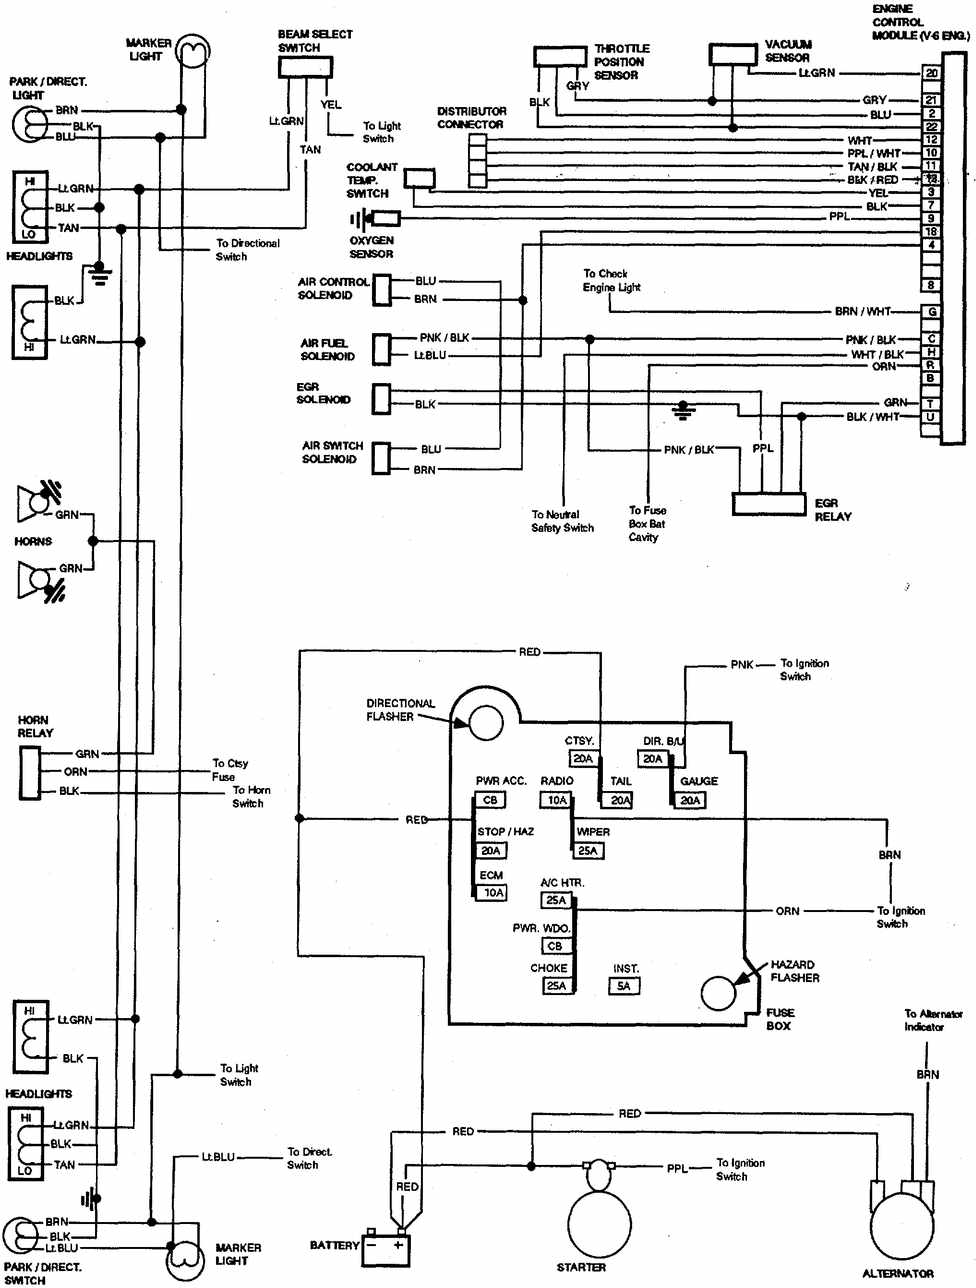 1968 firebird wiring schematic · chevrolet v8 trucks 1981